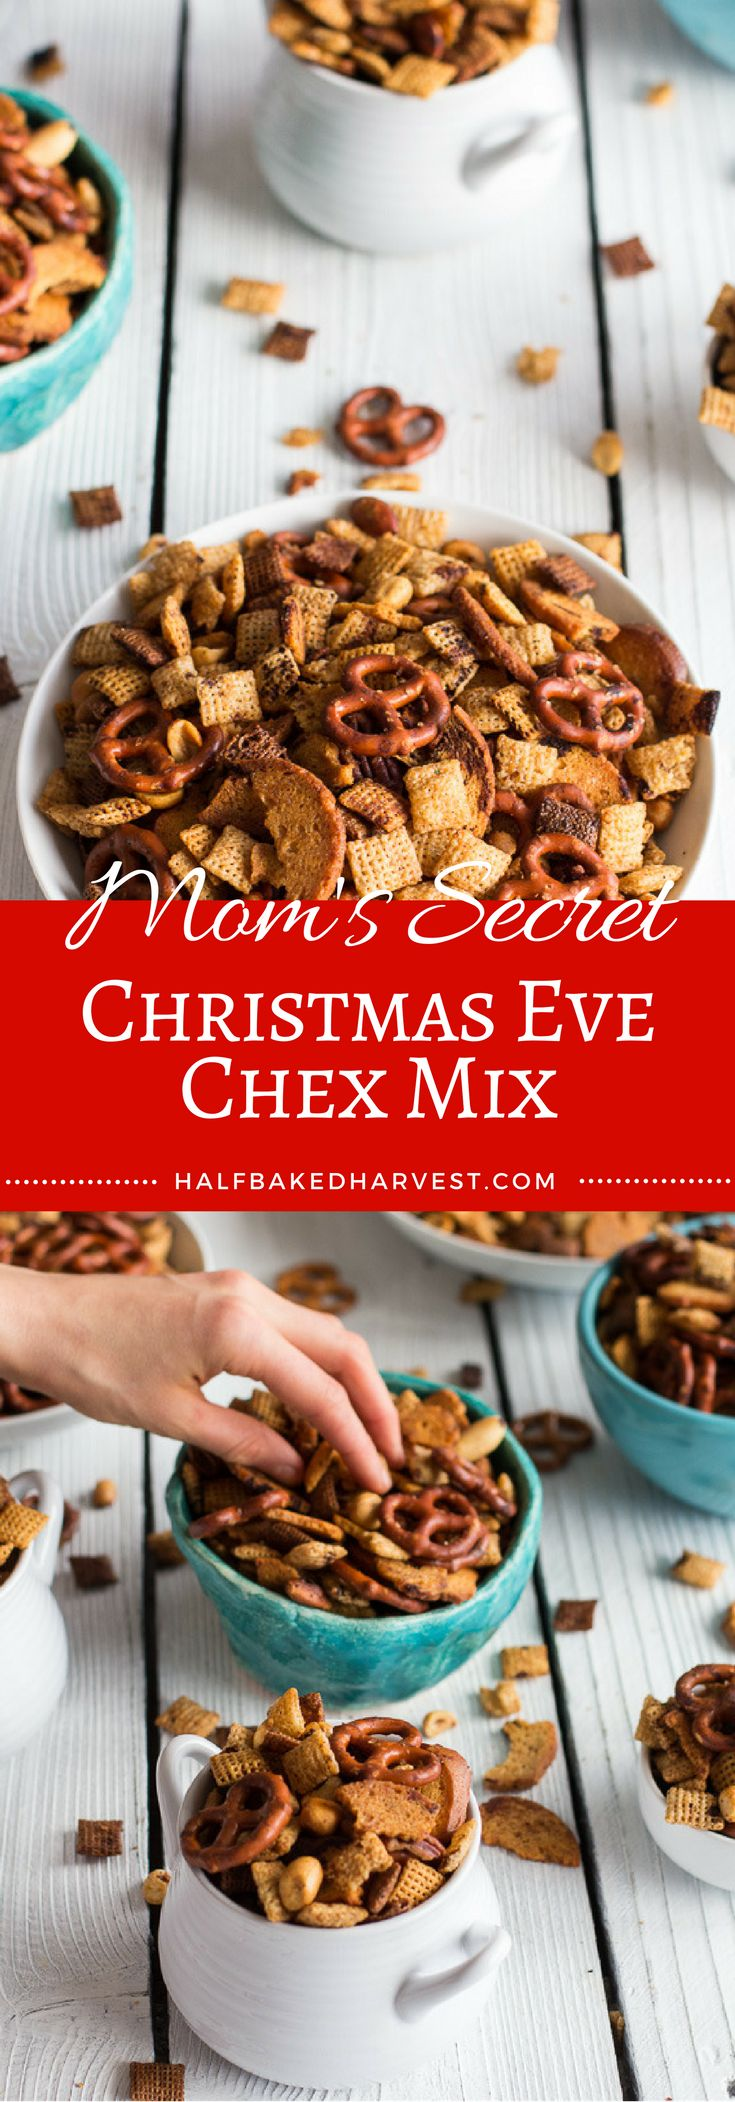 Mom's Secret Christmas Eve Chex Mix | halfbakedharvest.com @hbharvest